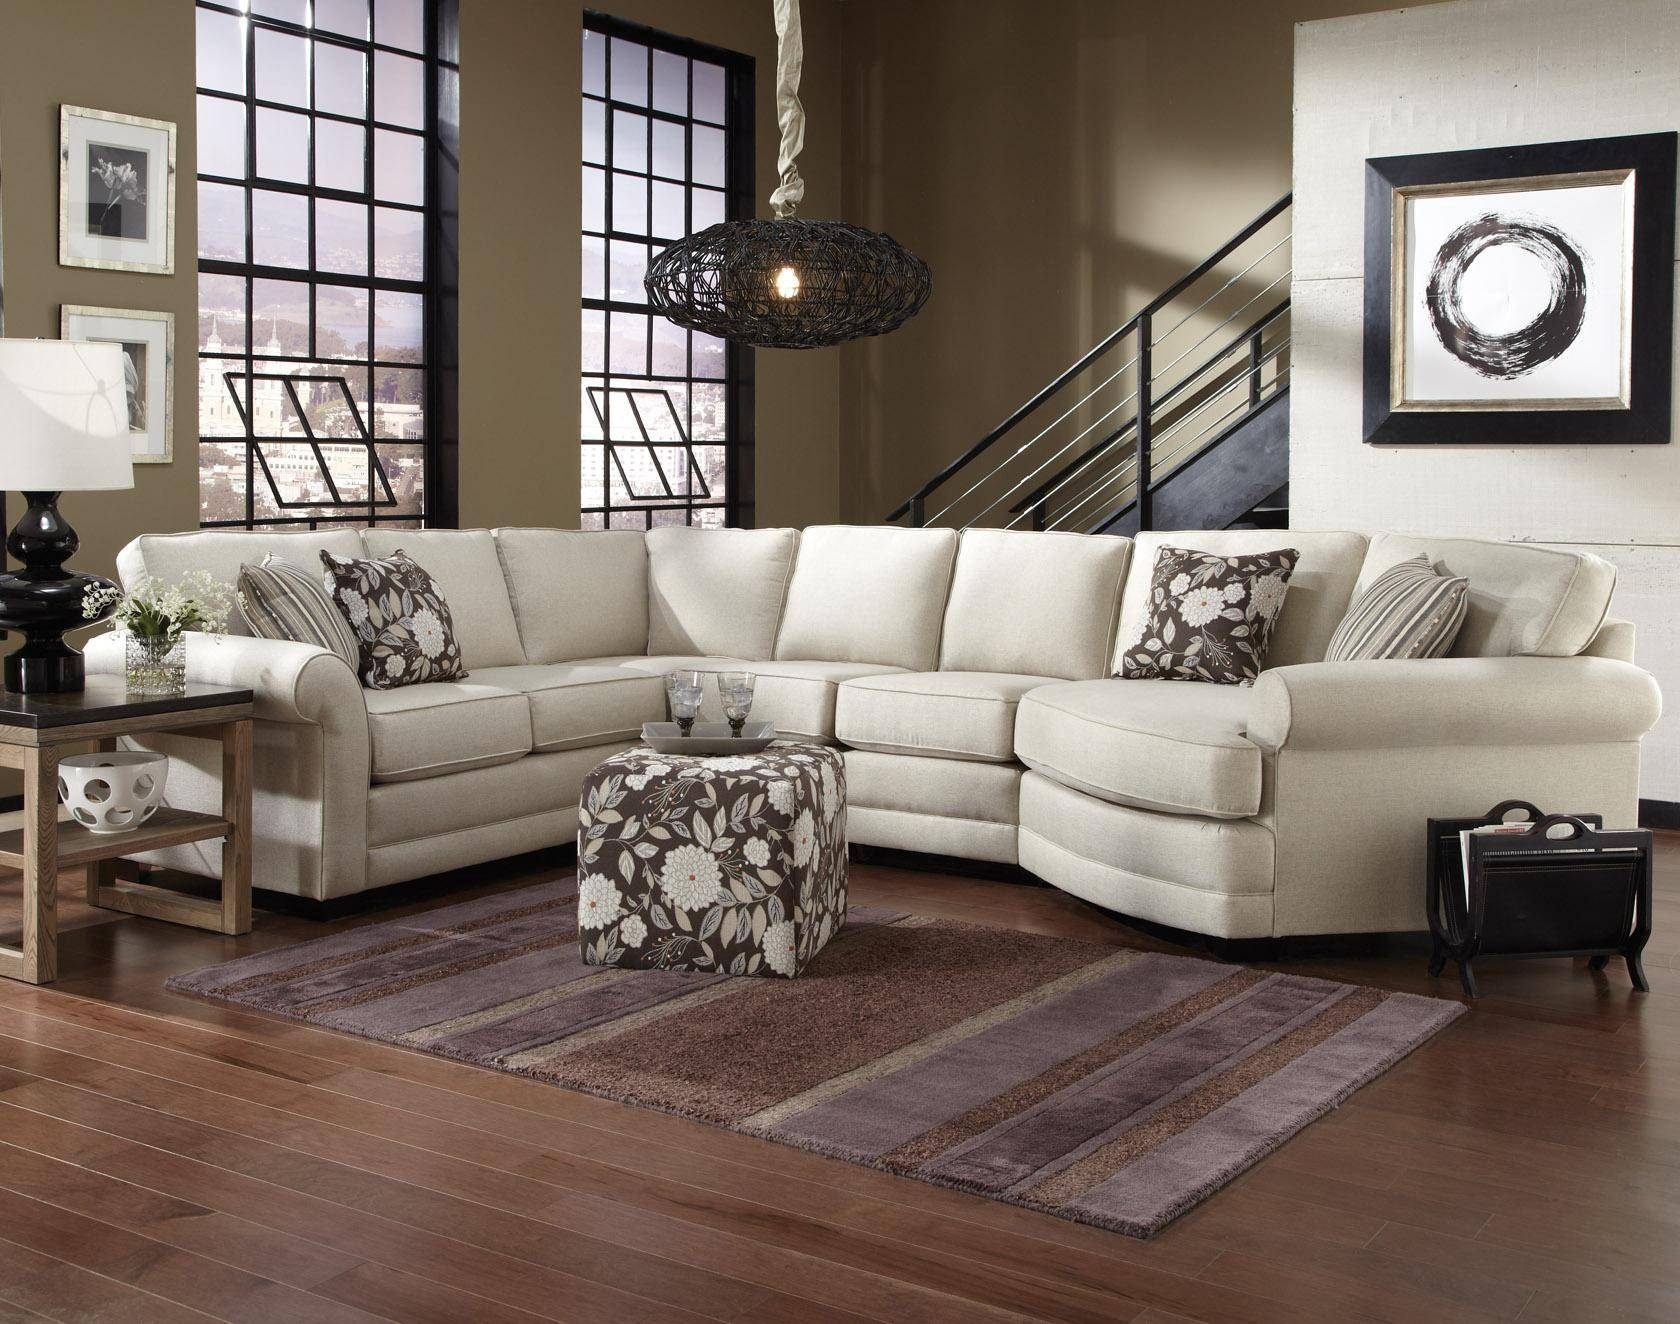 England Brantley 5 Seat Sectional Sofa With Cuddler - Dunk intended for Sectional Sofa With Cuddler Chaise (Image 6 of 25)